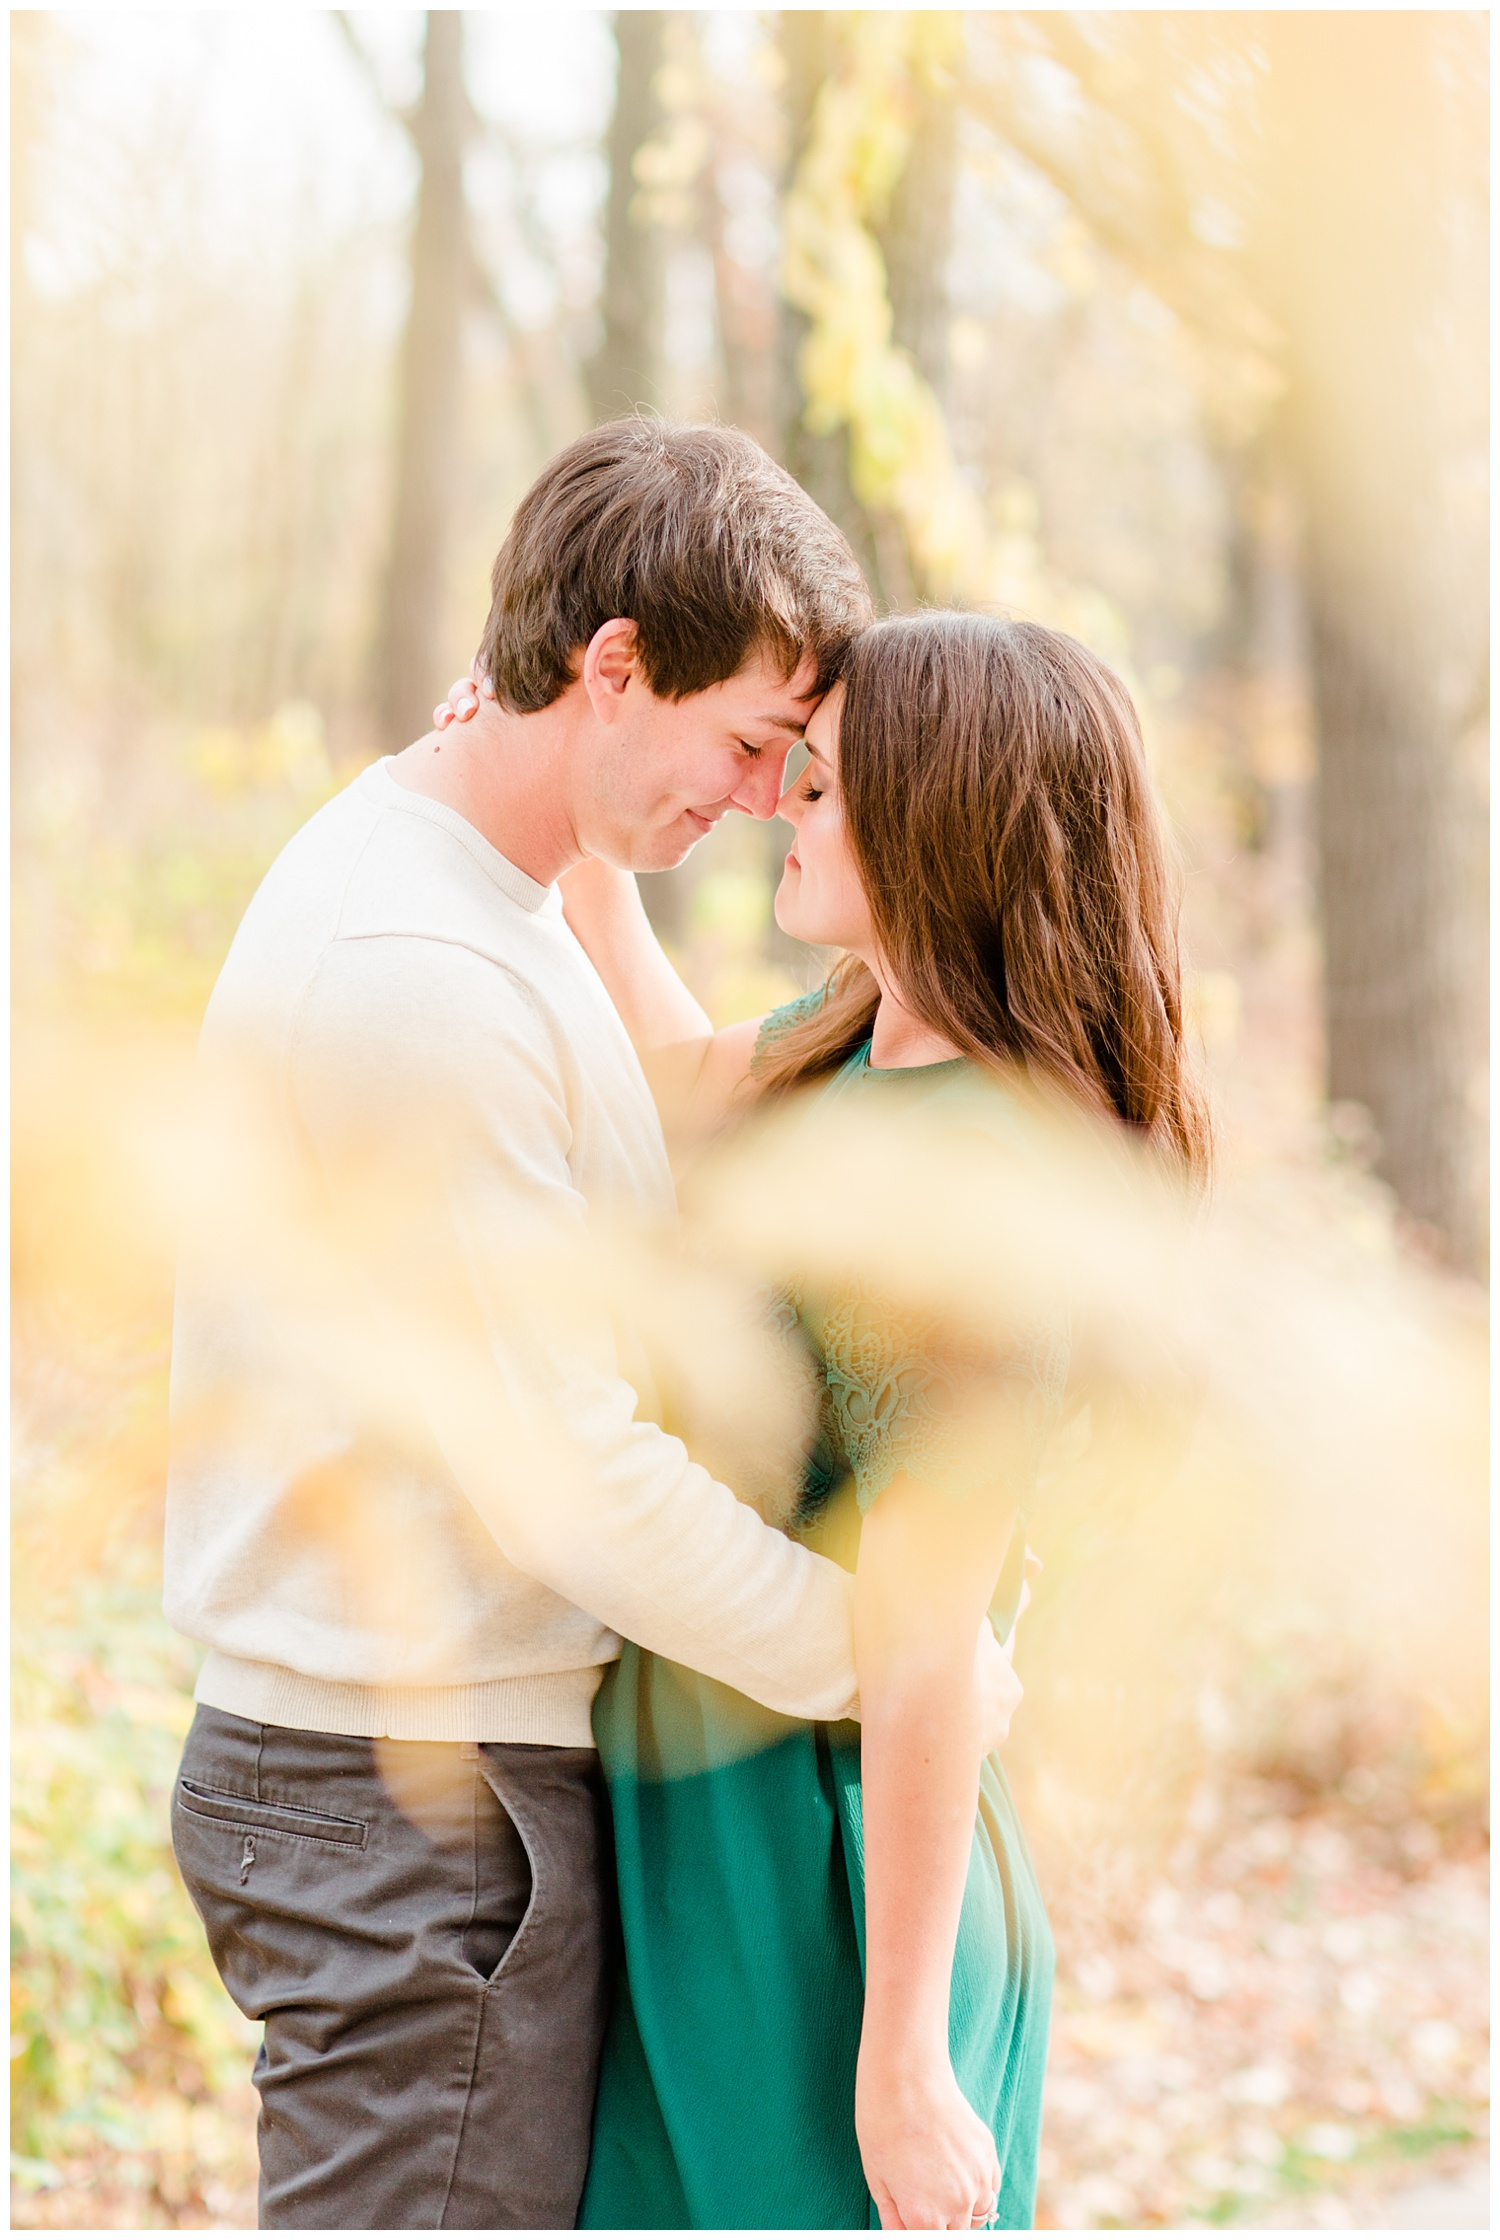 Fall in Iowa, Jenna wearing an emerald green dress embraces Brady in the middle of an autumn path at Lost Island Nature Center   CB Studio